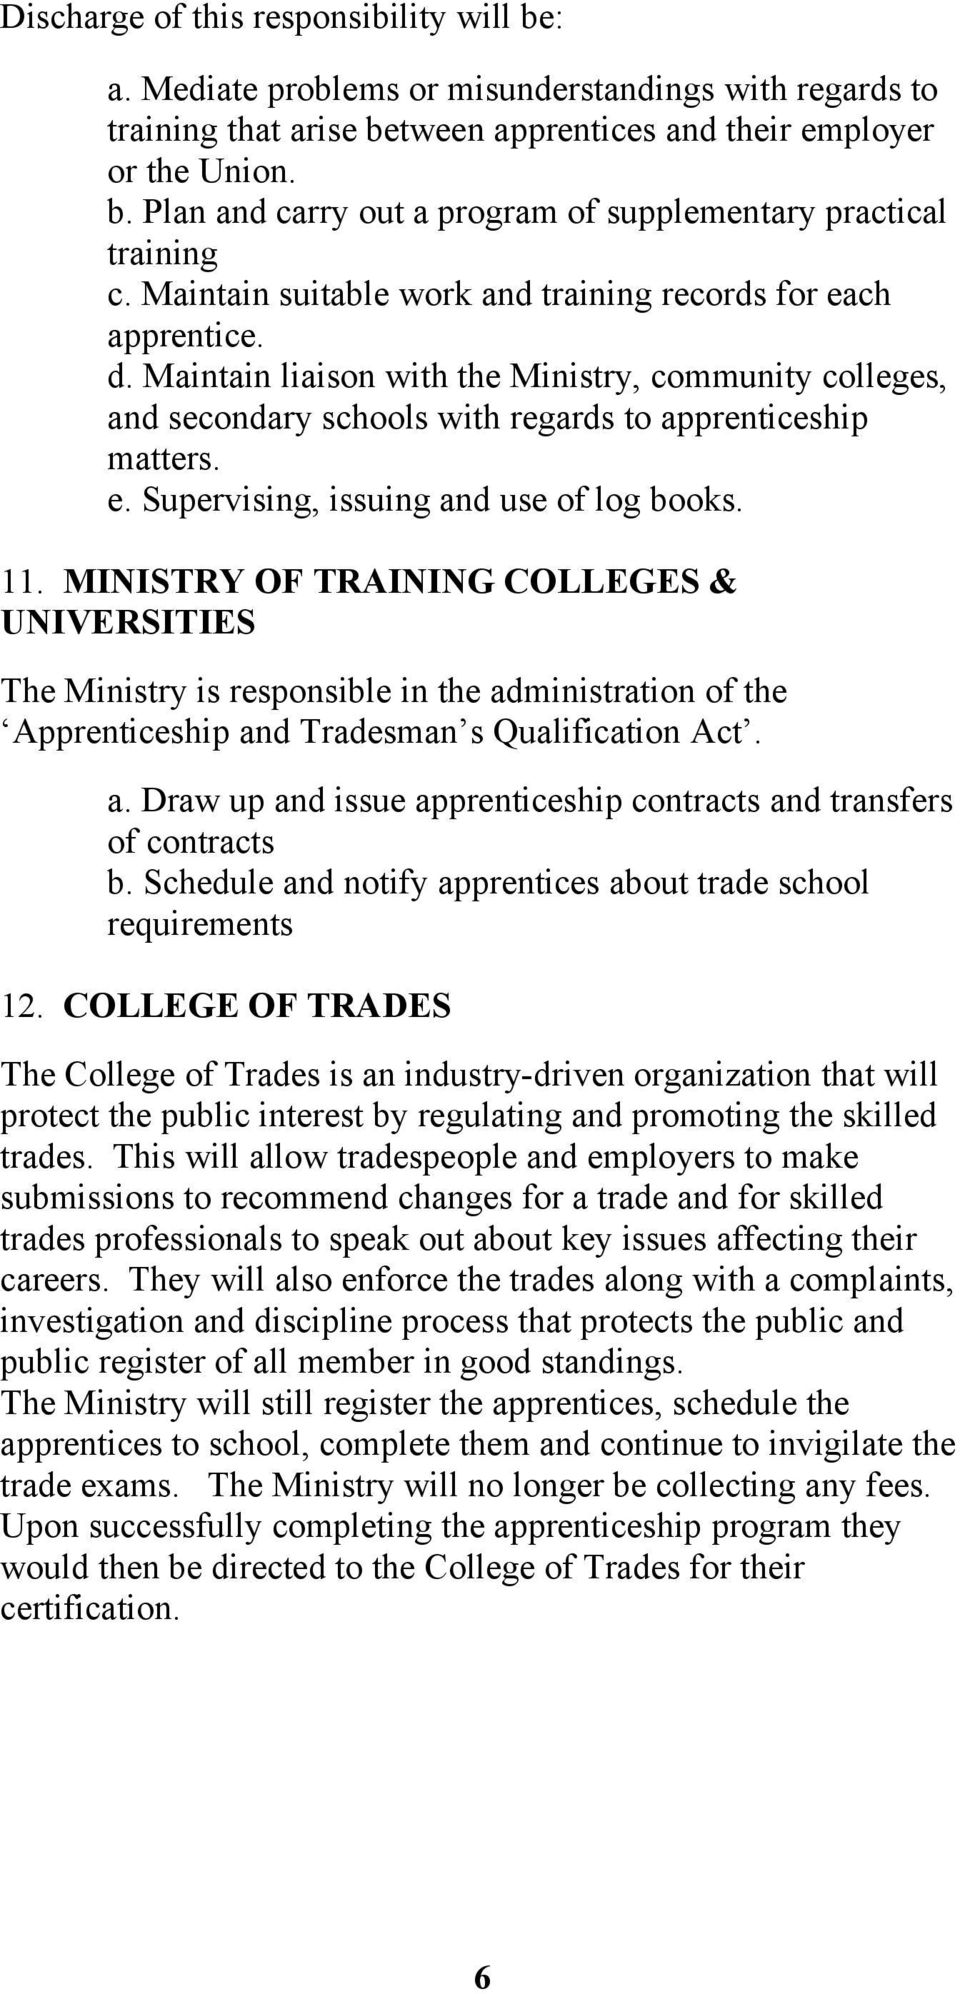 11. MINISTRY OF TRAINING COLLEGES & UNIVERSITIES The Ministry is responsible in the administration of the Apprenticeship and Tradesman s Qualification Act. a. Draw up and issue apprenticeship contracts and transfers of contracts b.